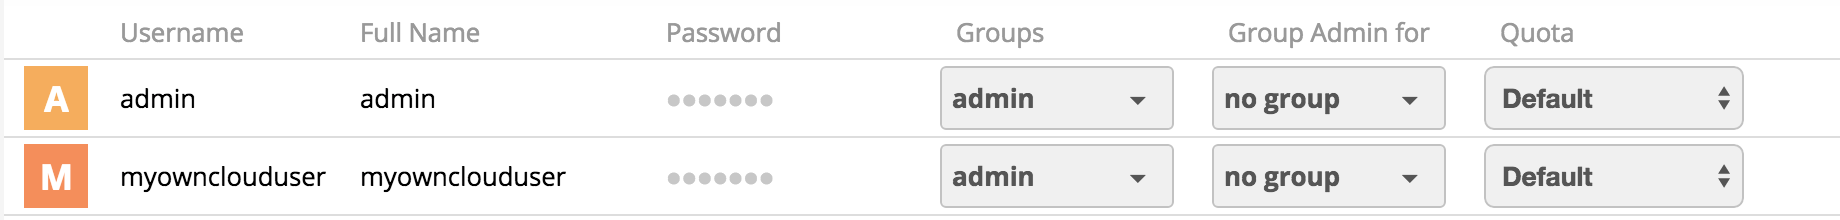 Add your own admin user - see that the user has been added